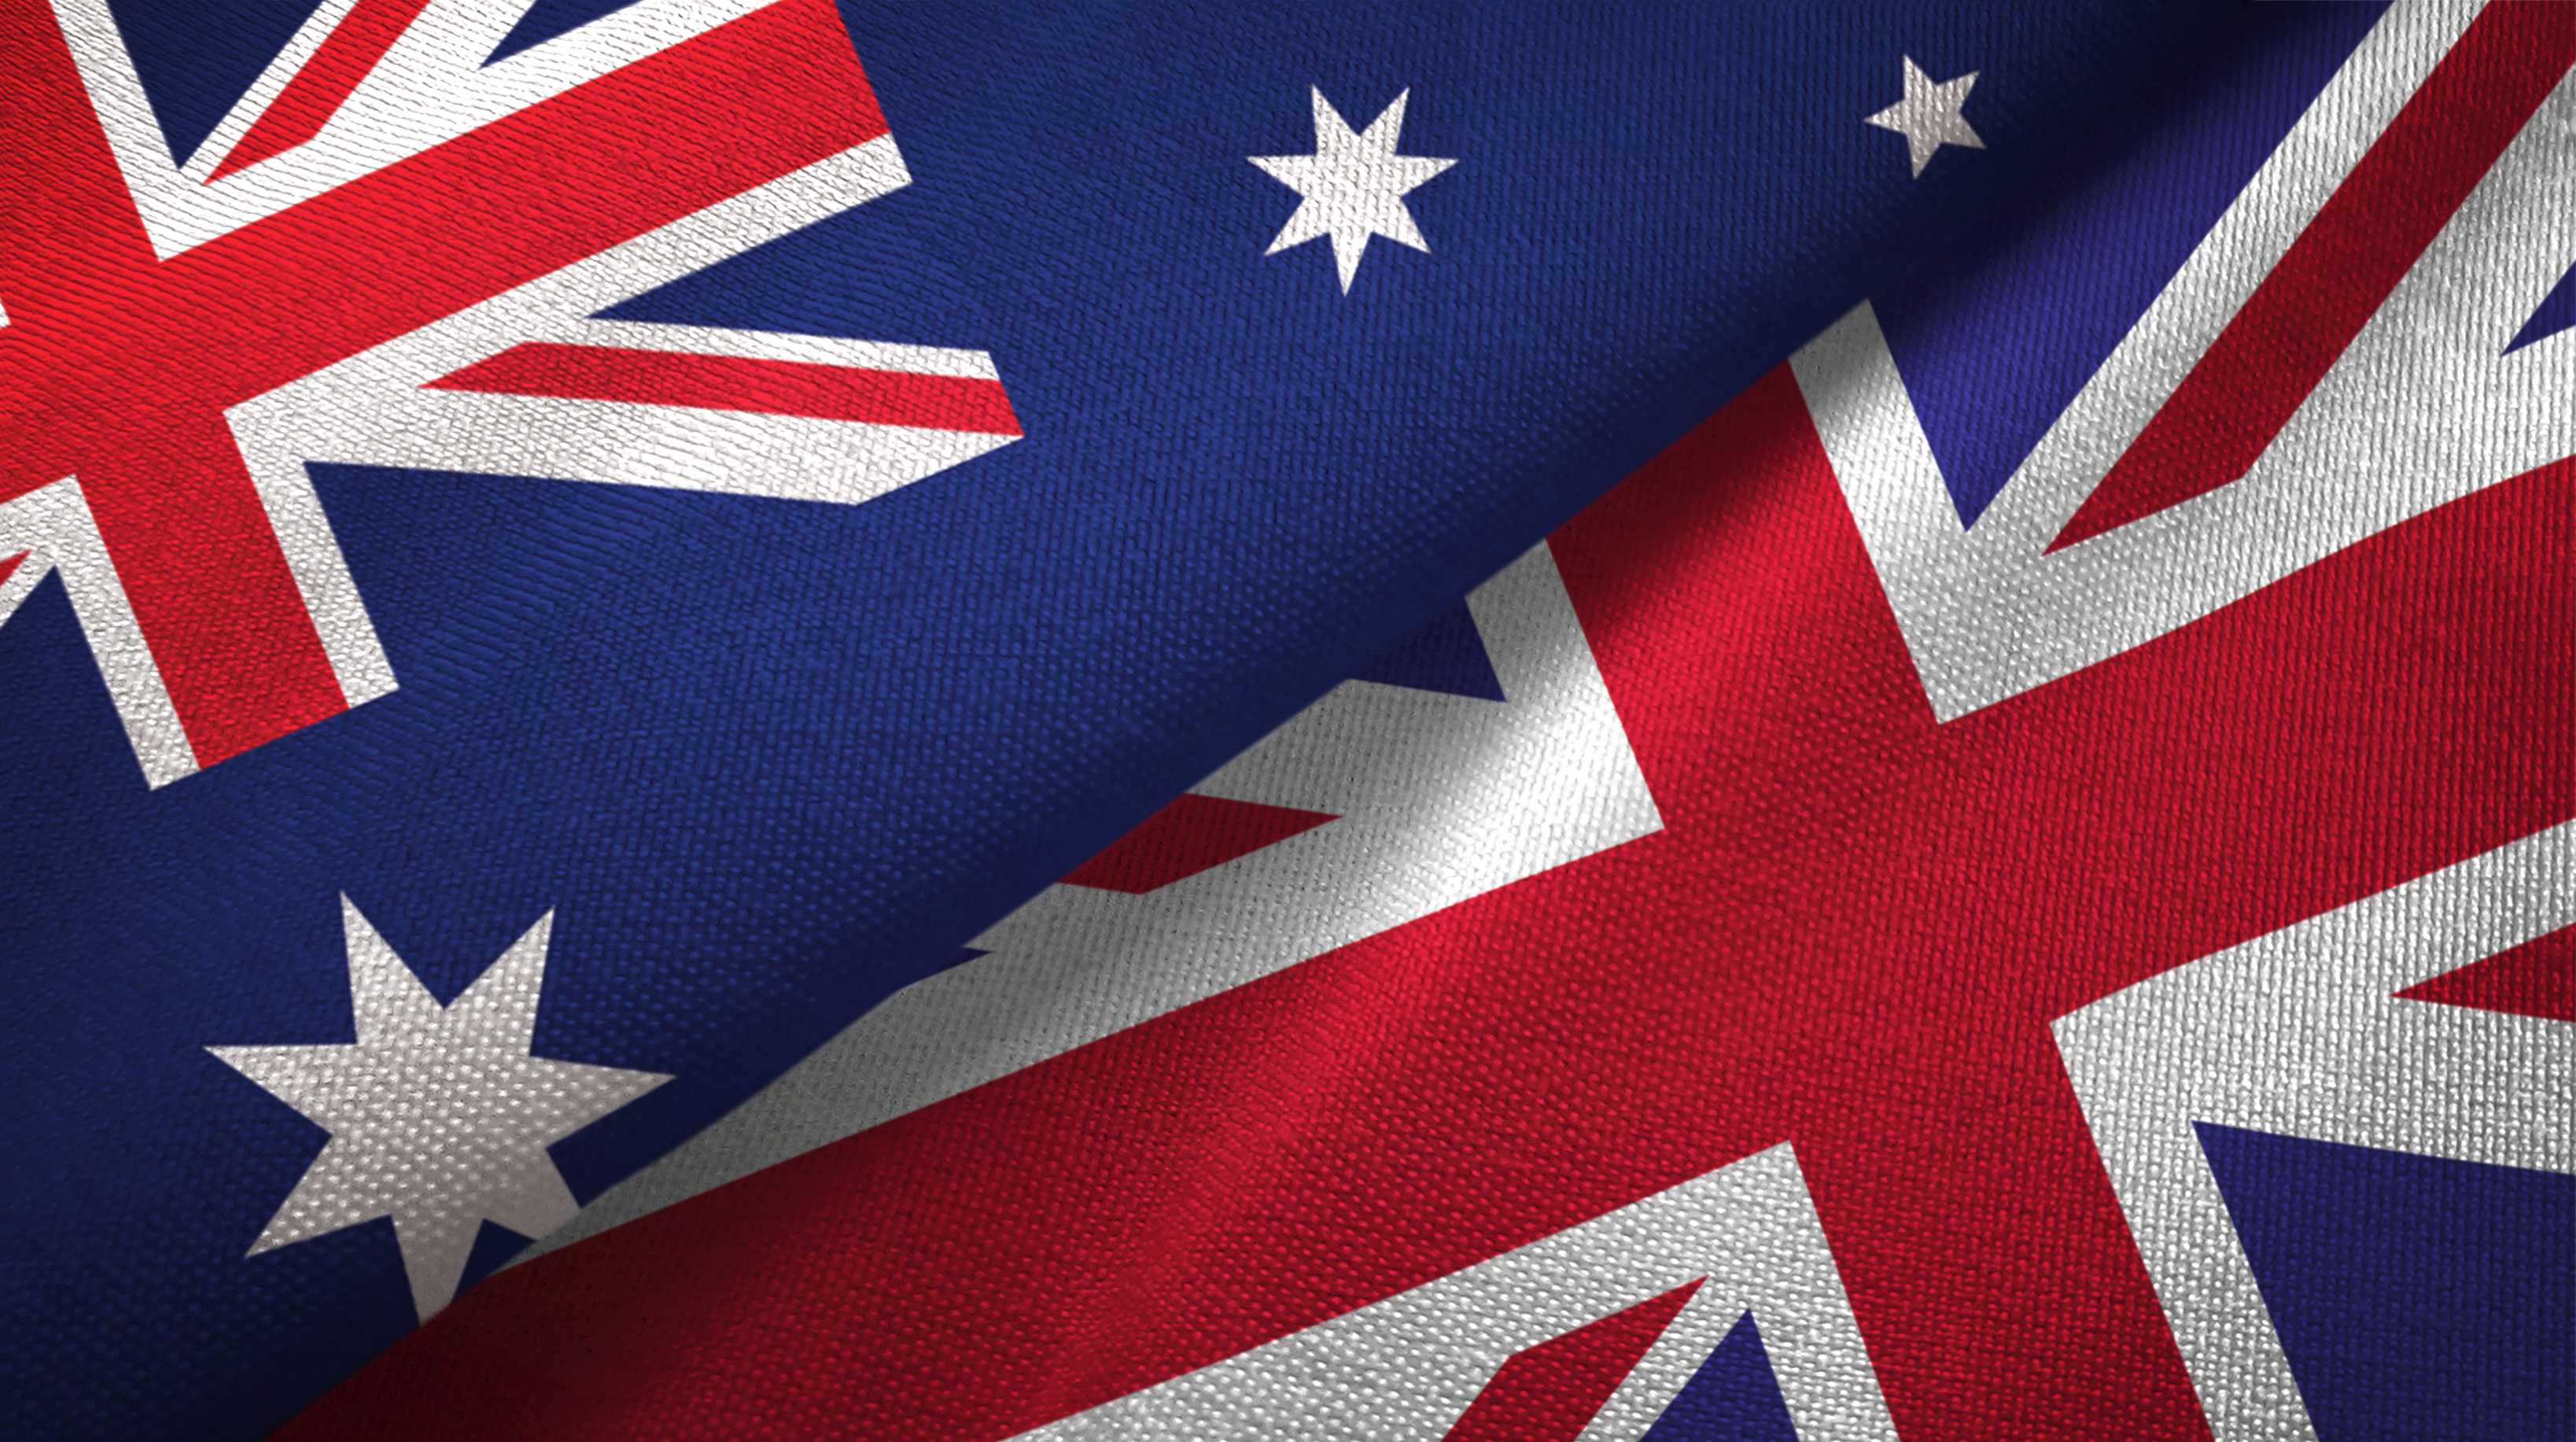 Australia negotiates free trade agreement with United Kingdom. A win for AUS?